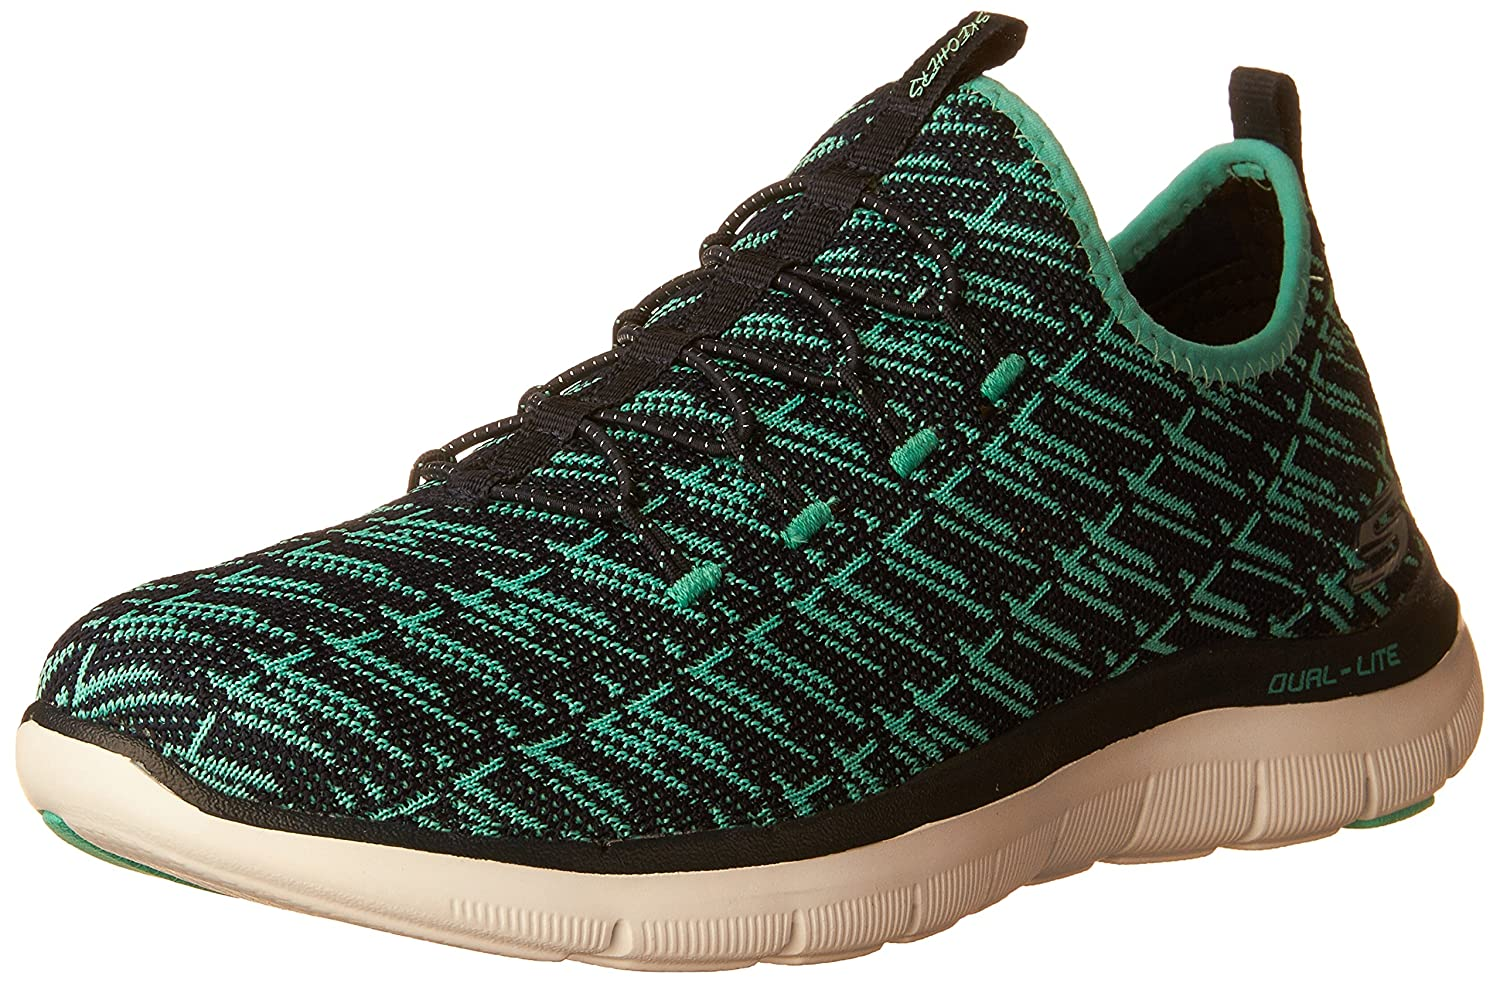 Skechers Insight Women's Flex Appeal 2.0 Insight Skechers Sneaker B01IVNENSC 10 B(M) US|Navy Green 6f07f2